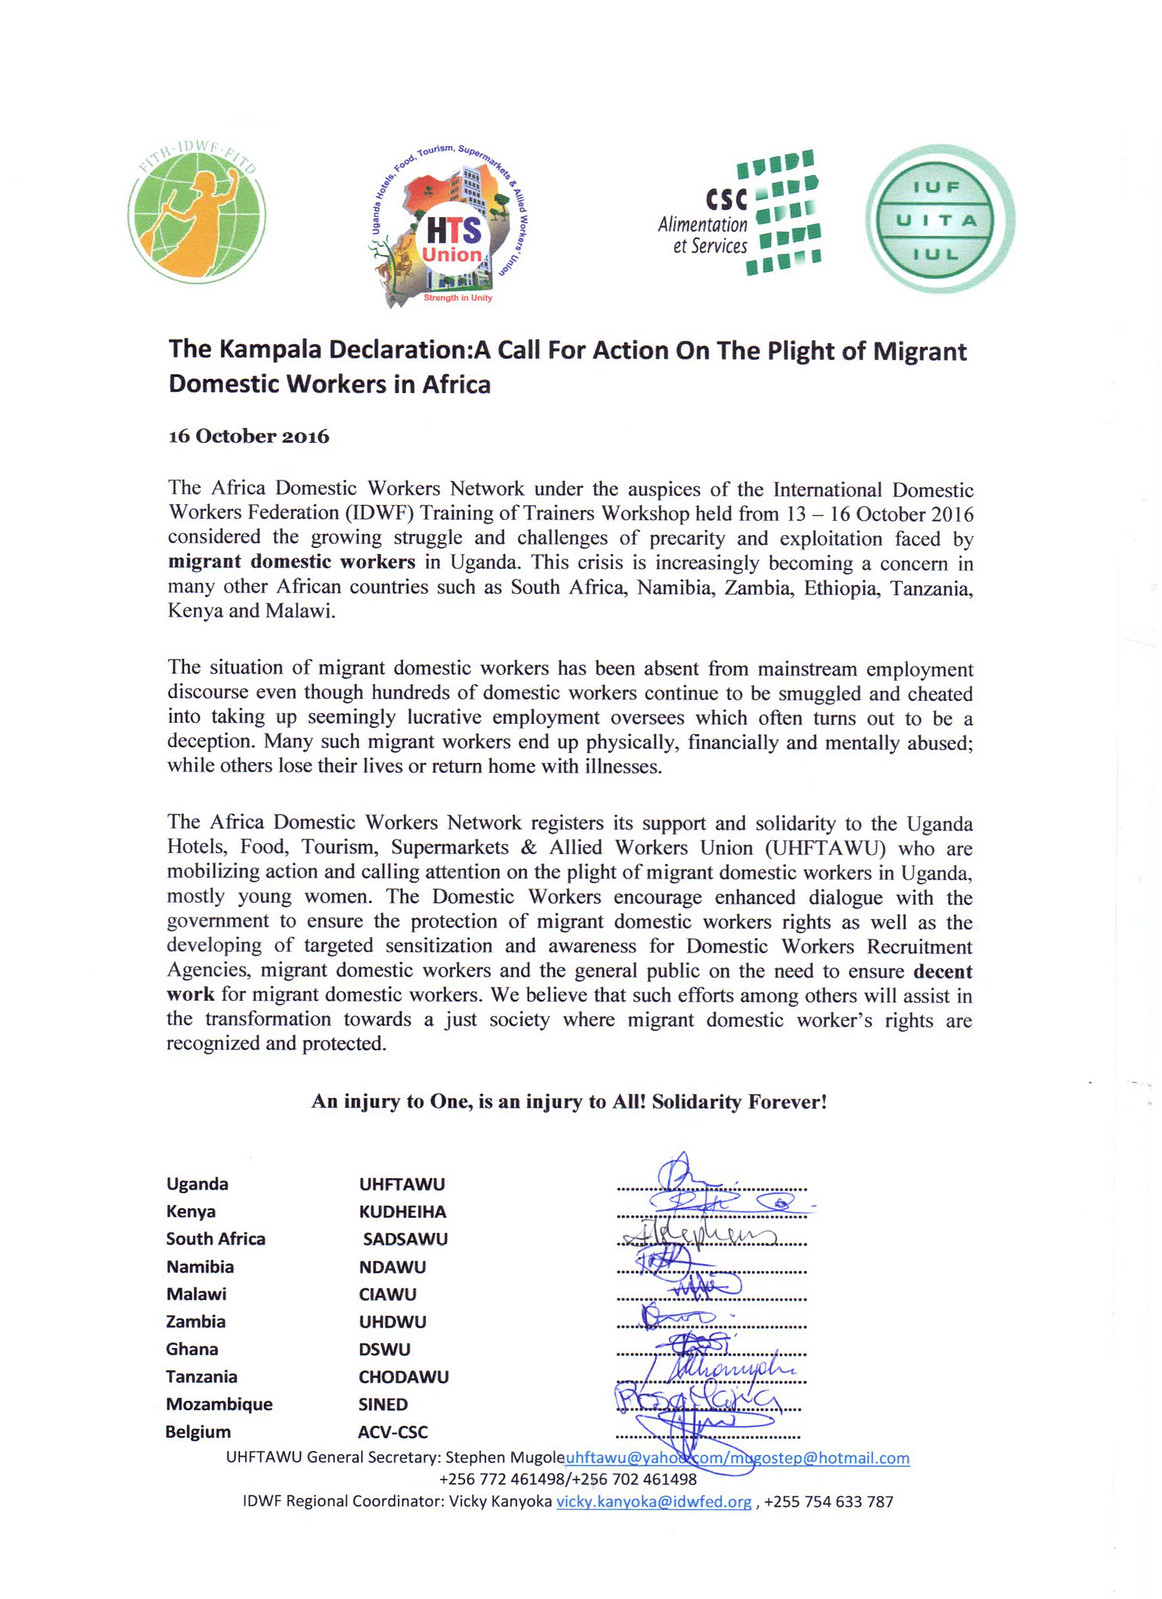 2016-10-13~16 Uganda: The Kampala Declaration - A Call For Action On The Plight of Migrant Domestic Workers in Africa